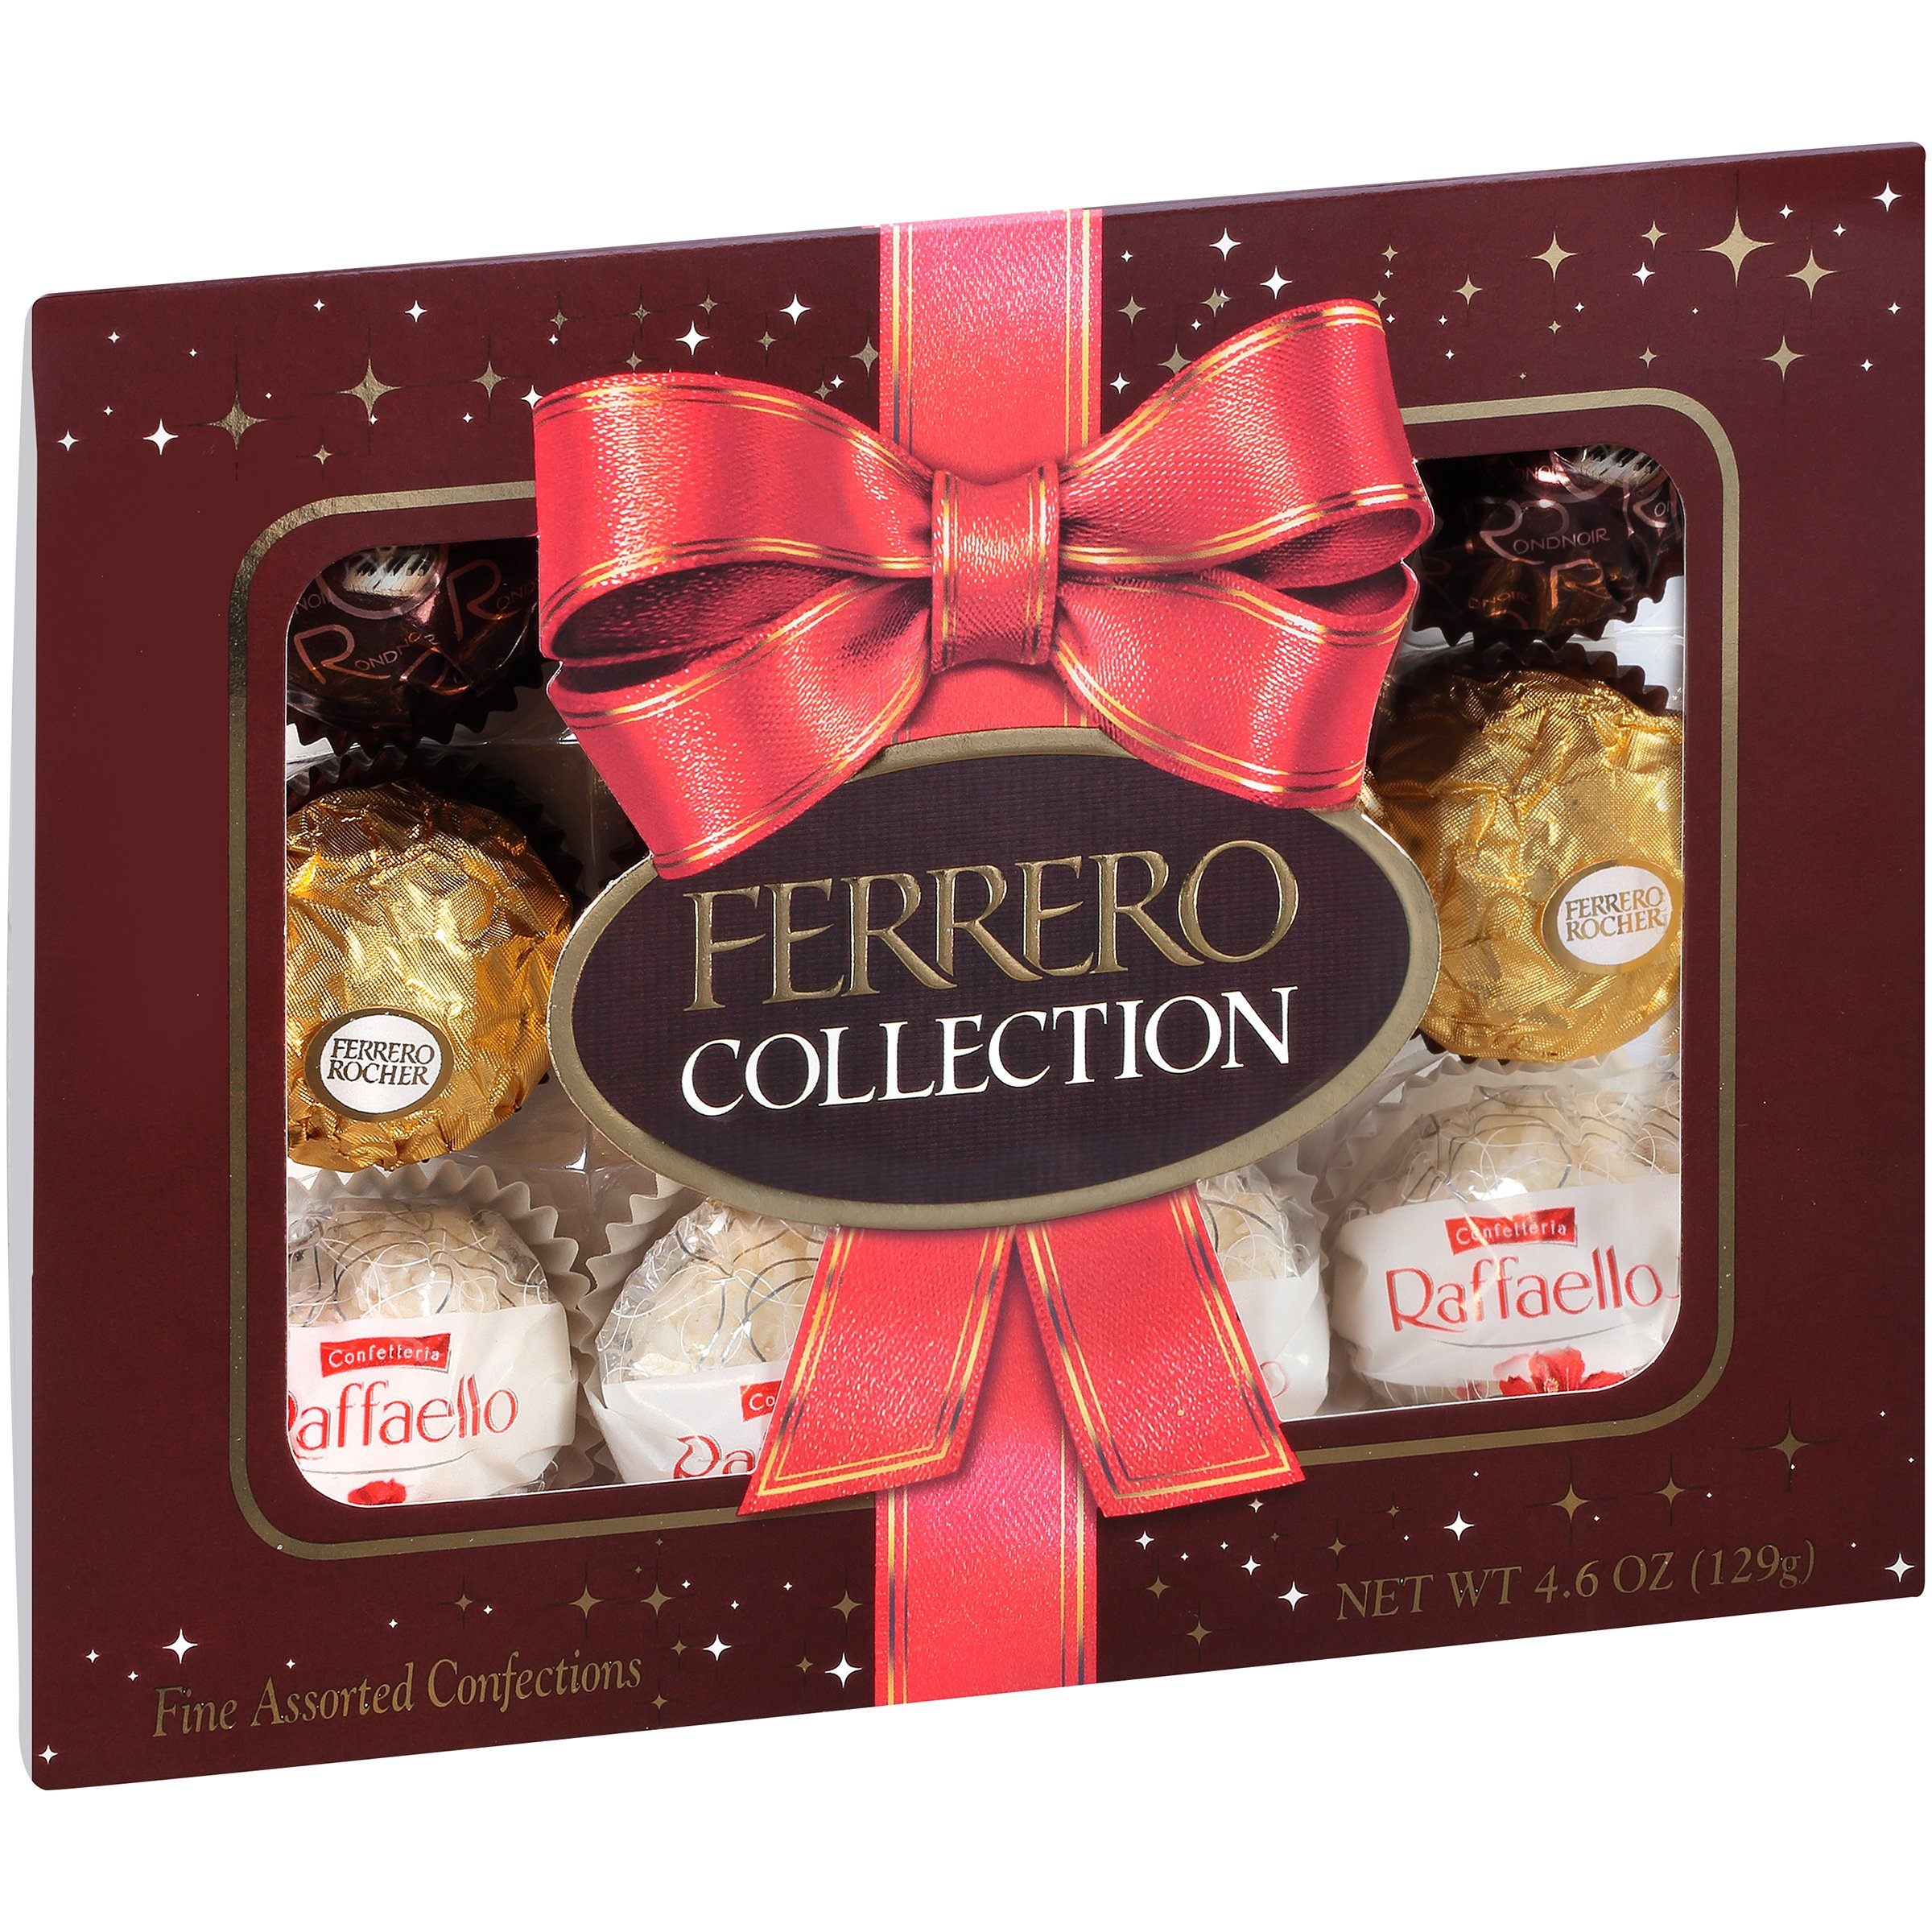 Ferrero Collection Fine Assorted Confections, 4.6 oz